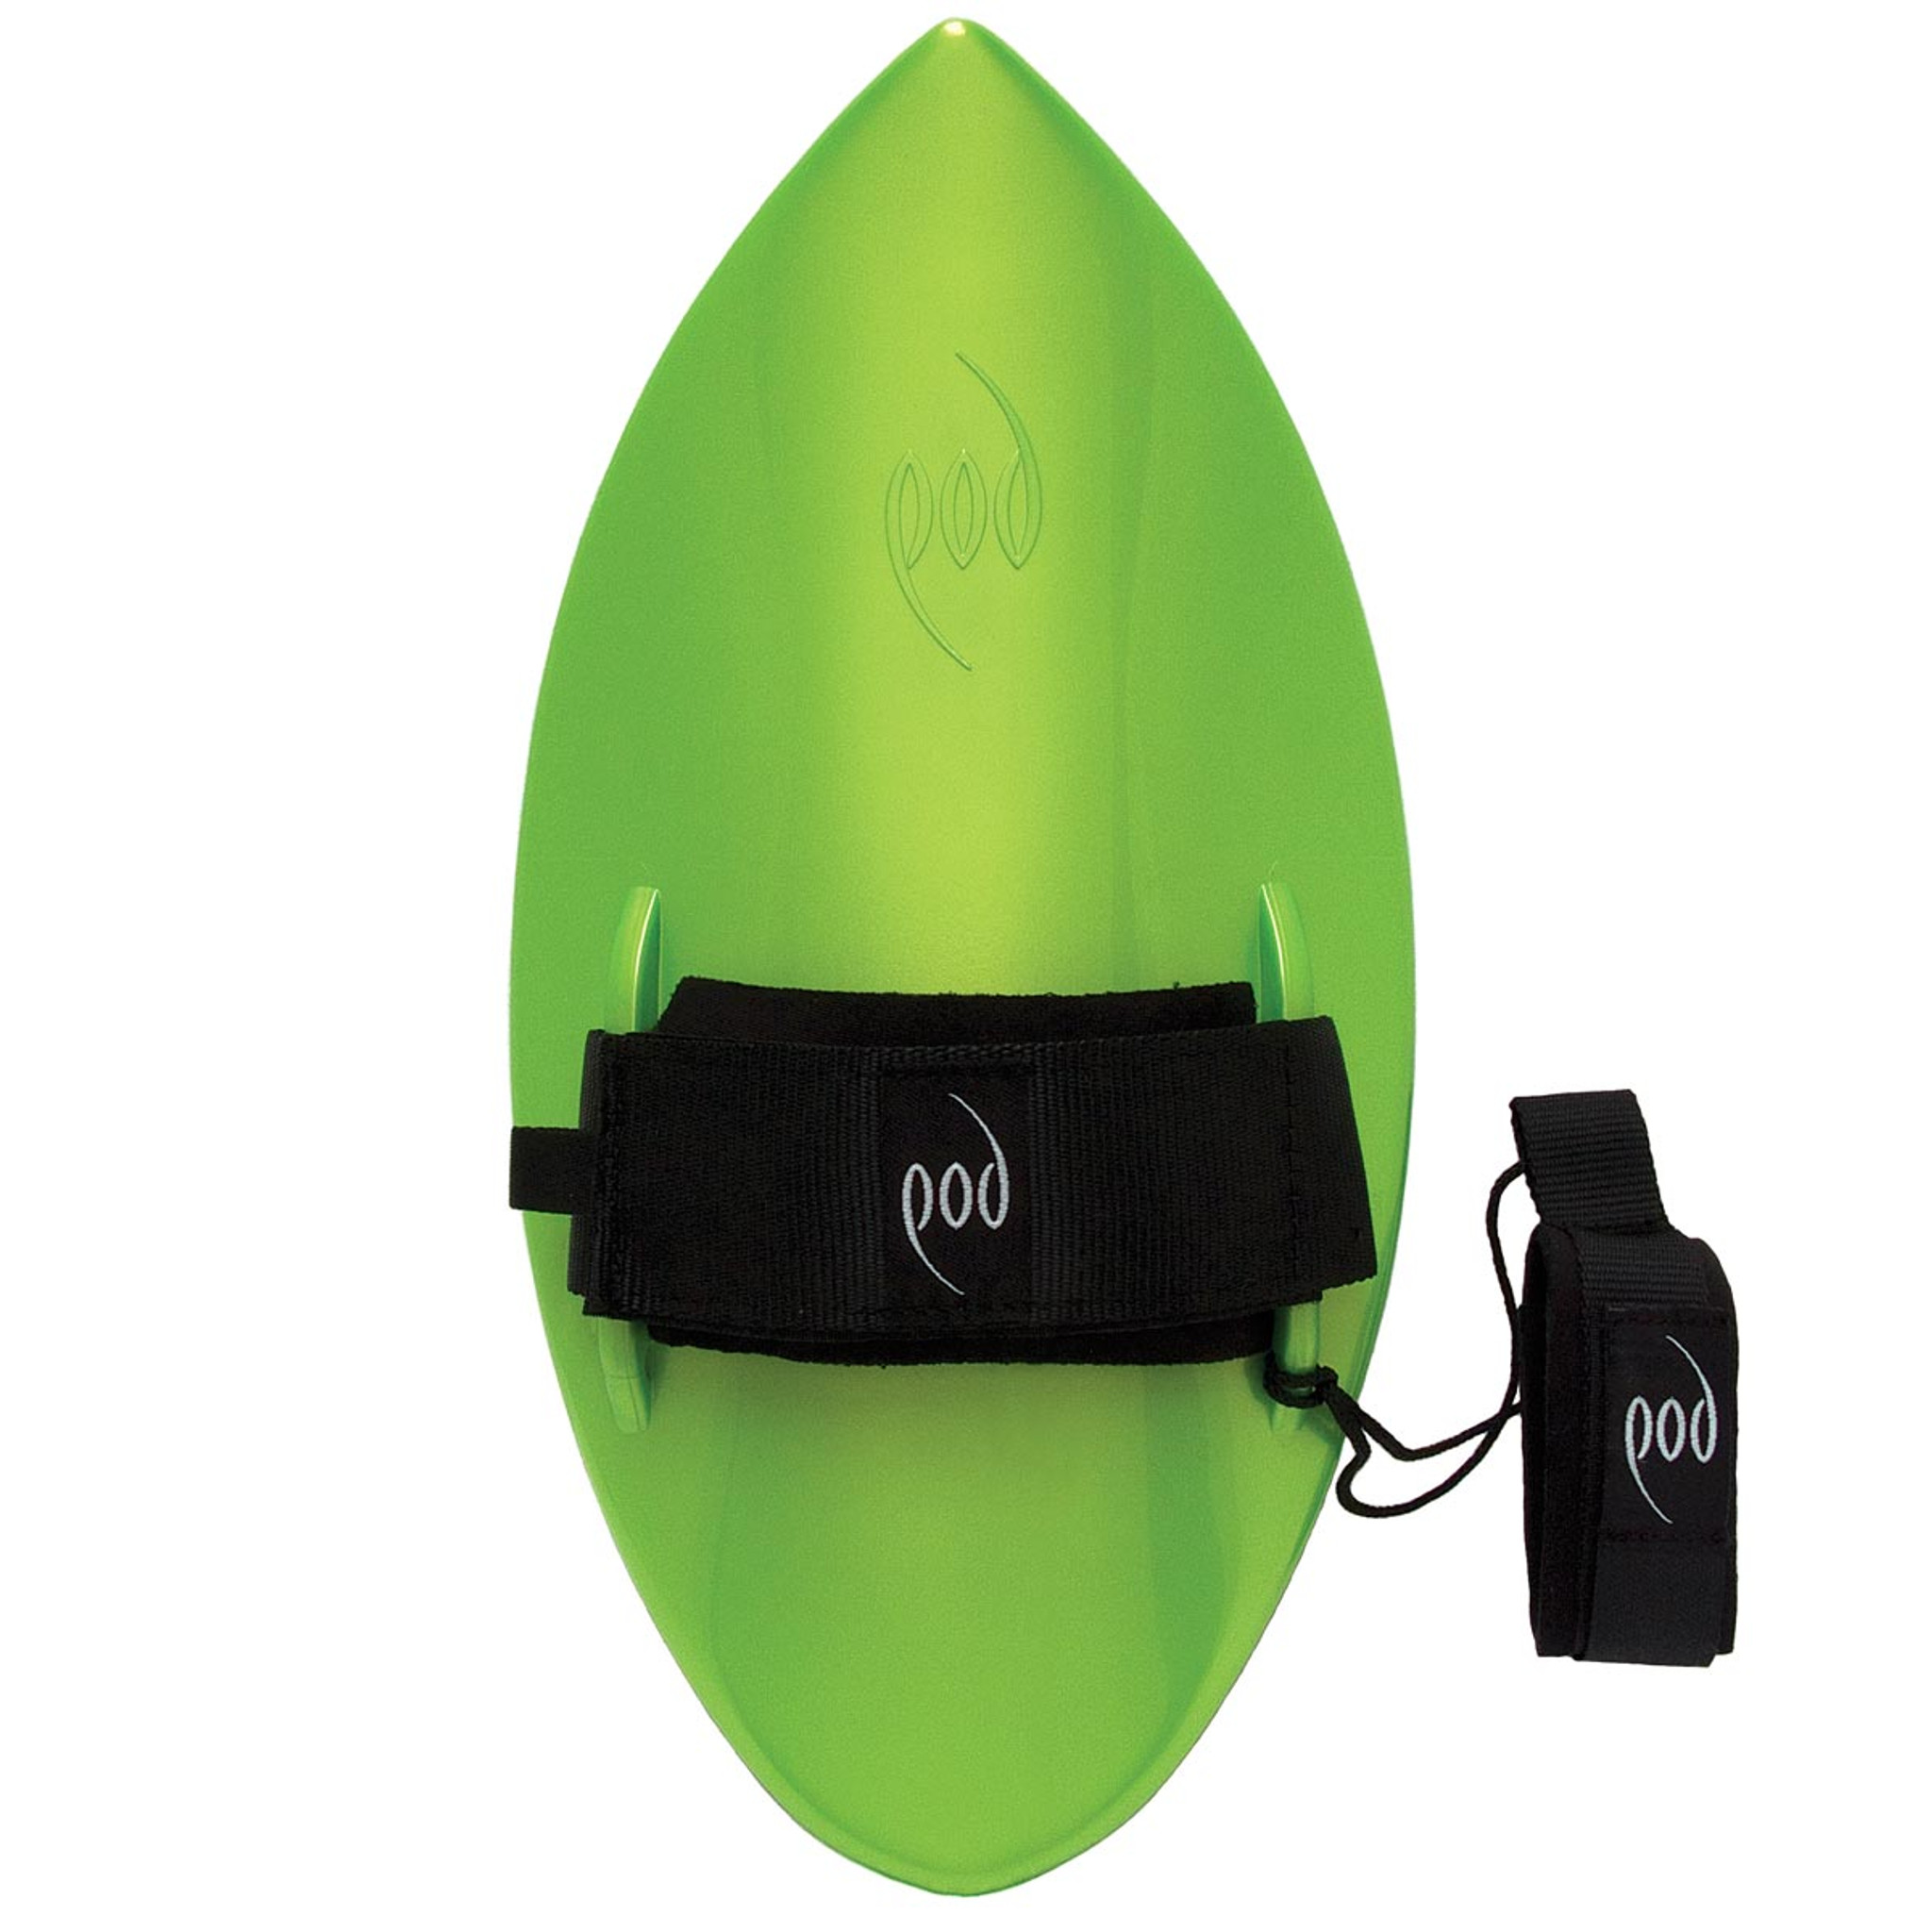 Bodysurfing Tools - POD Fins PF3 - Handboard - Socks - Savers